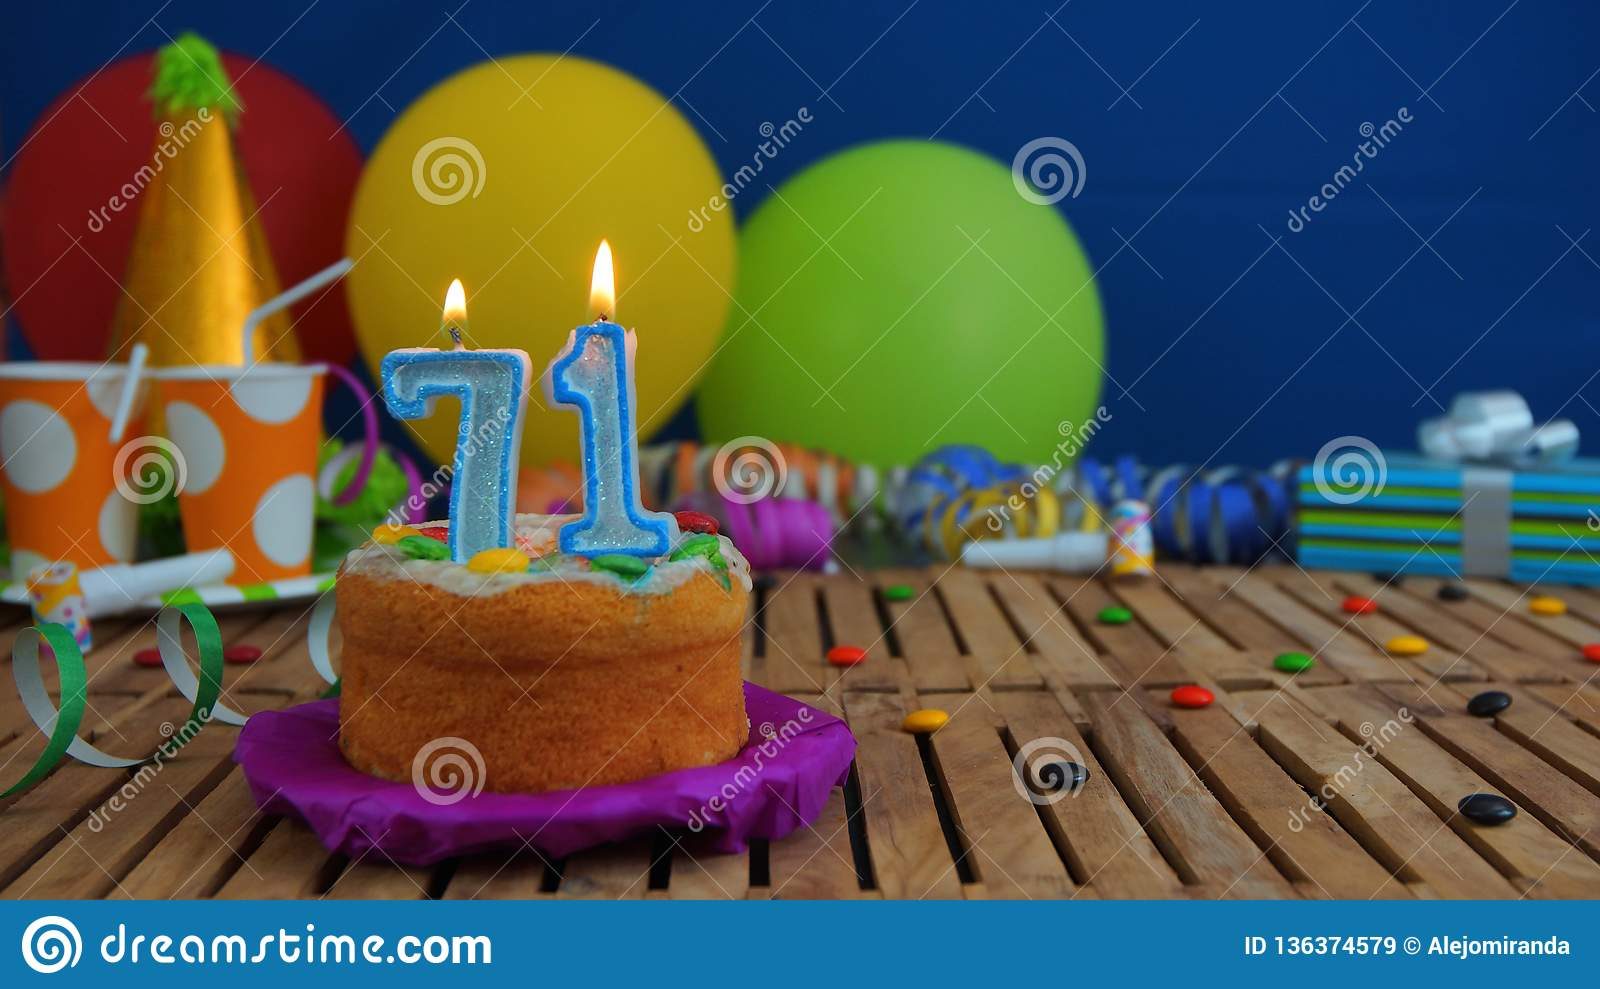 Birthday 71 Cake With Candles On Rustic Wooden Table With ...